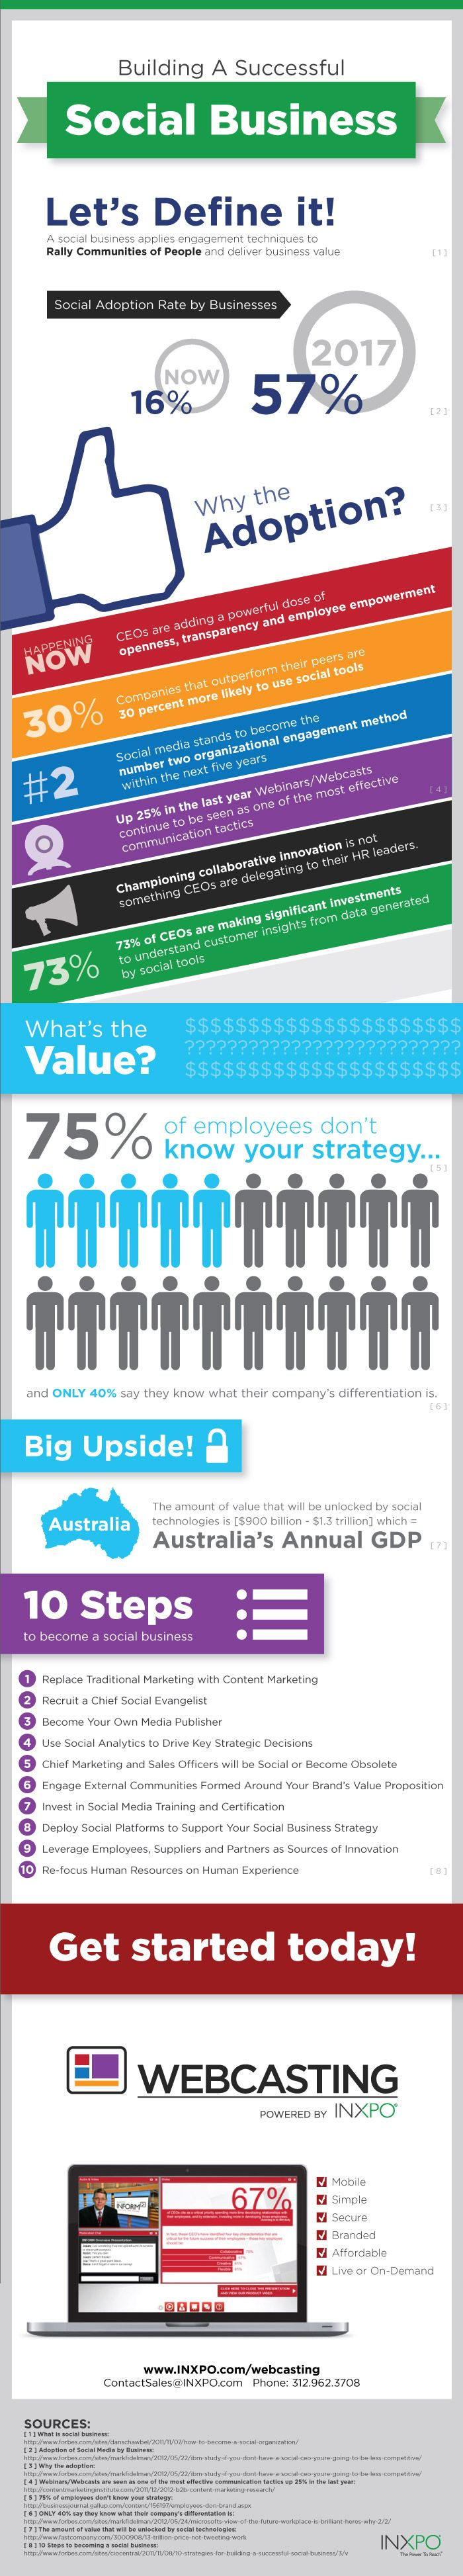 Building a Successful #SocialBusiness #Infographic